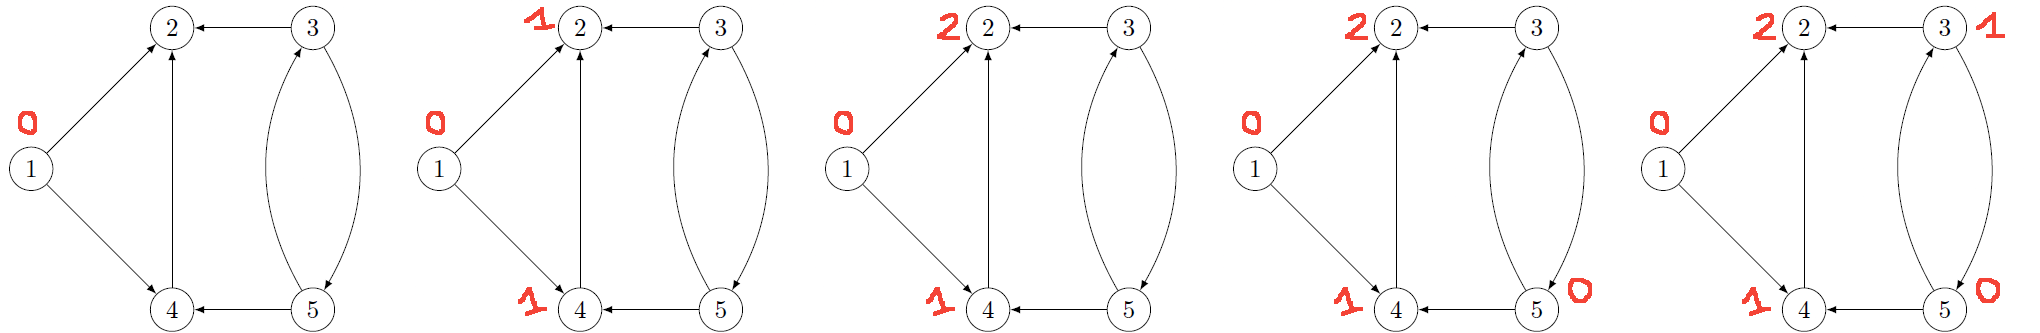 Example 2 - solution